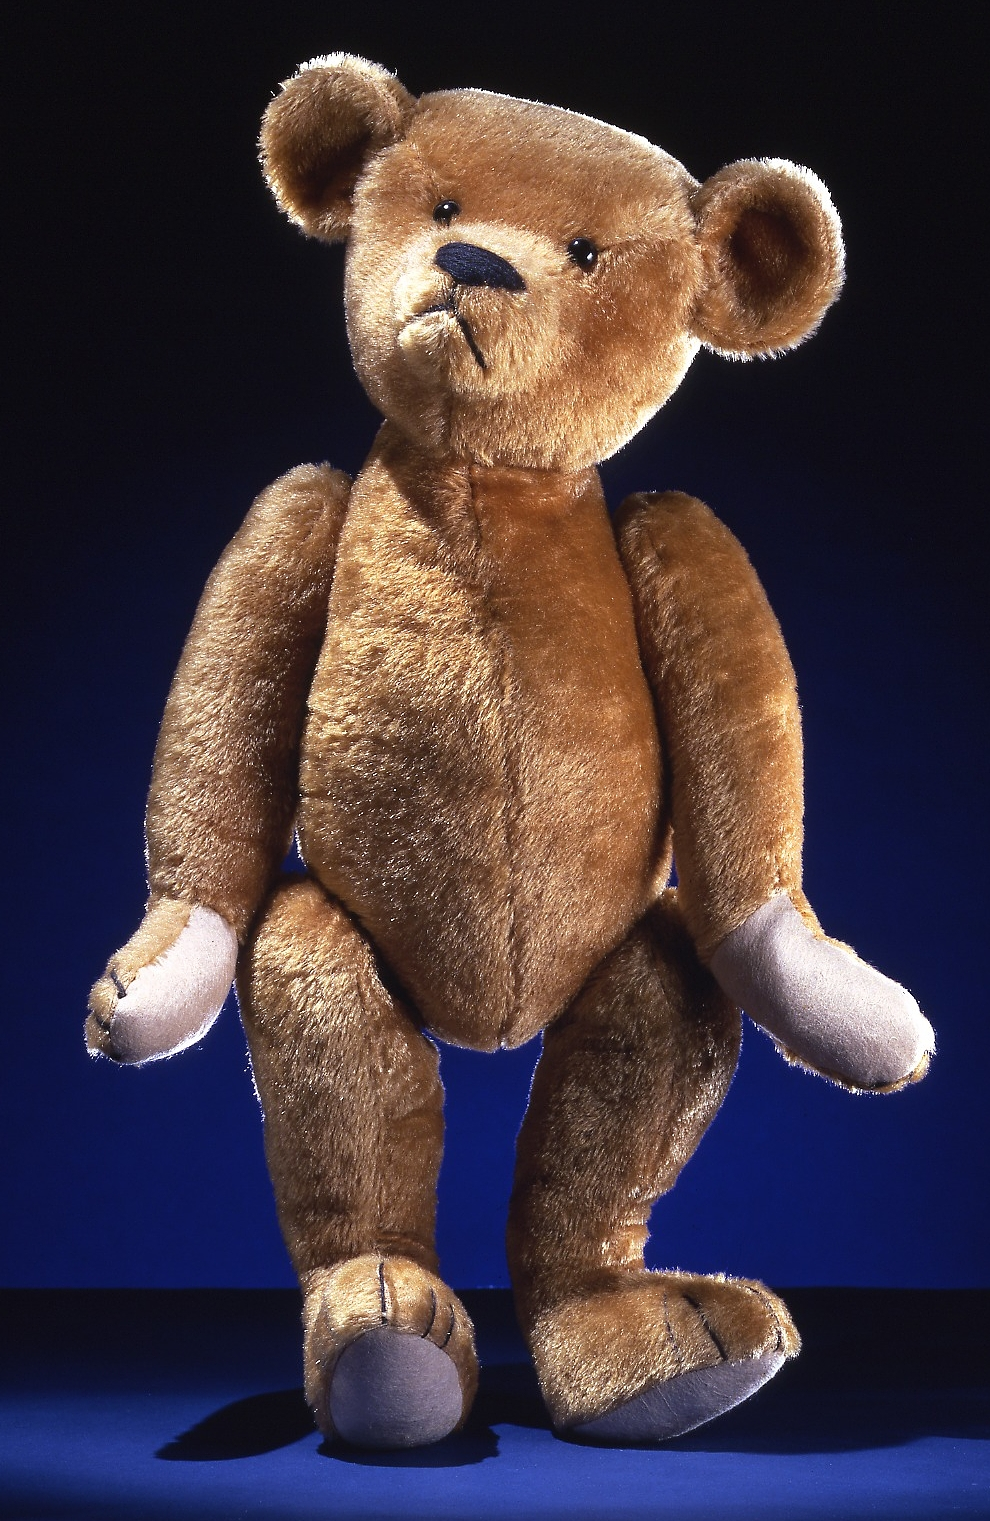 a history of the teddy bear Here is the history of the teddy bear and other cute bears created over the years for children in america, the teddy bear, according to tradition, began with a cartoon.